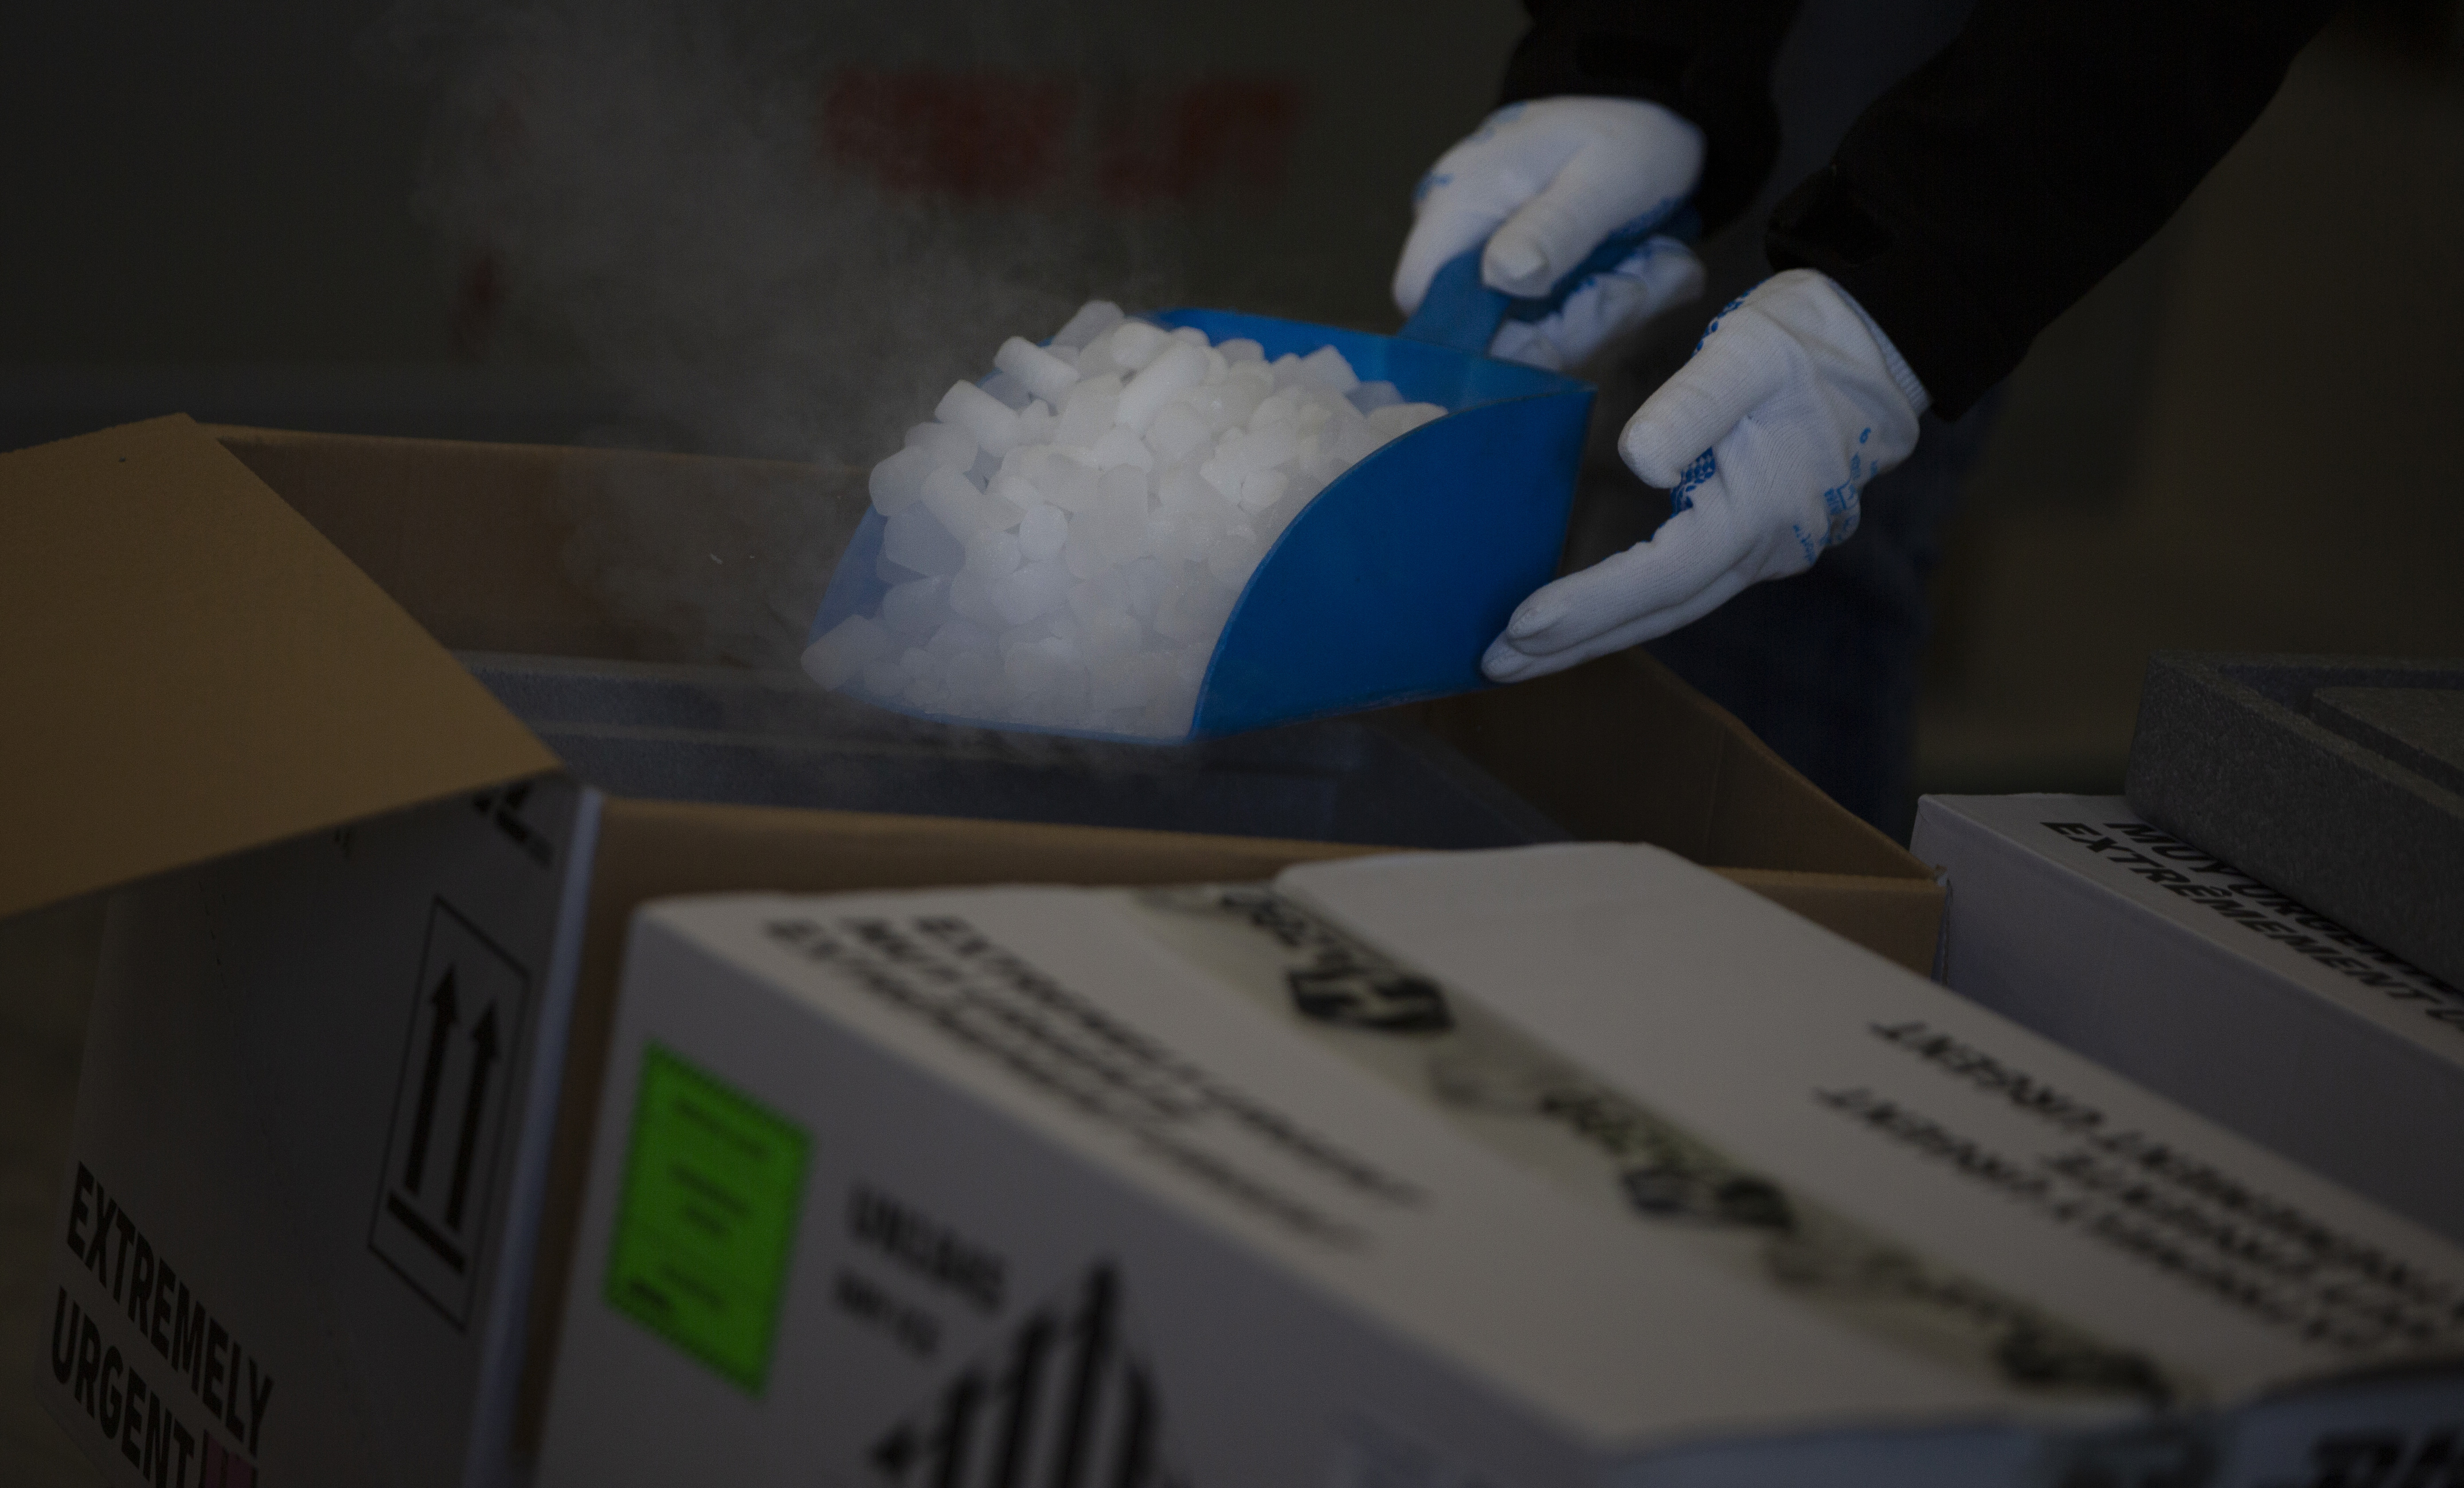 A hazardous goods worker in Belgium shows how dry ice is used to keep vaccines cool.